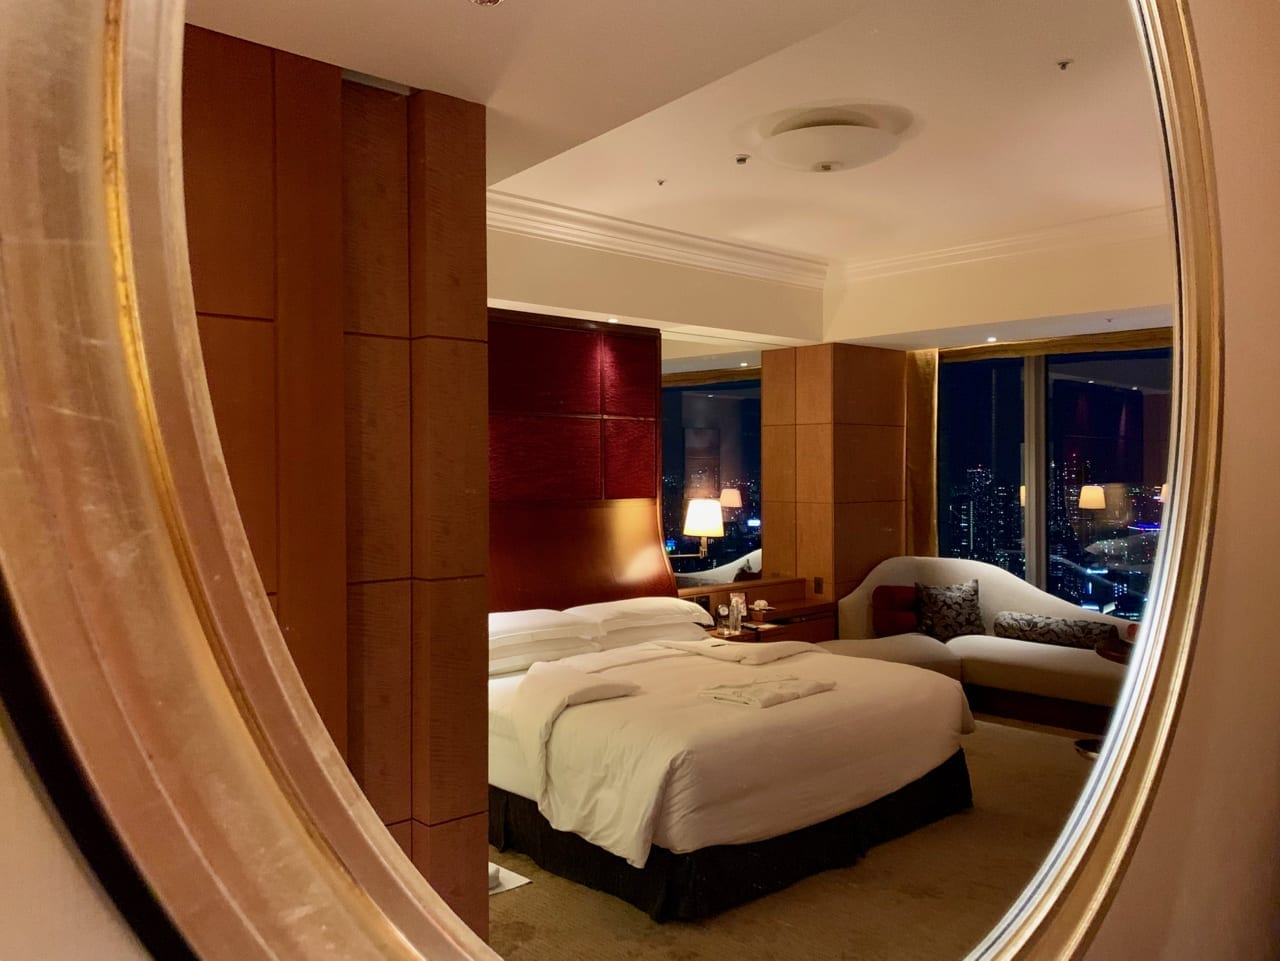 View of the bed in Shangri-La through a mirror